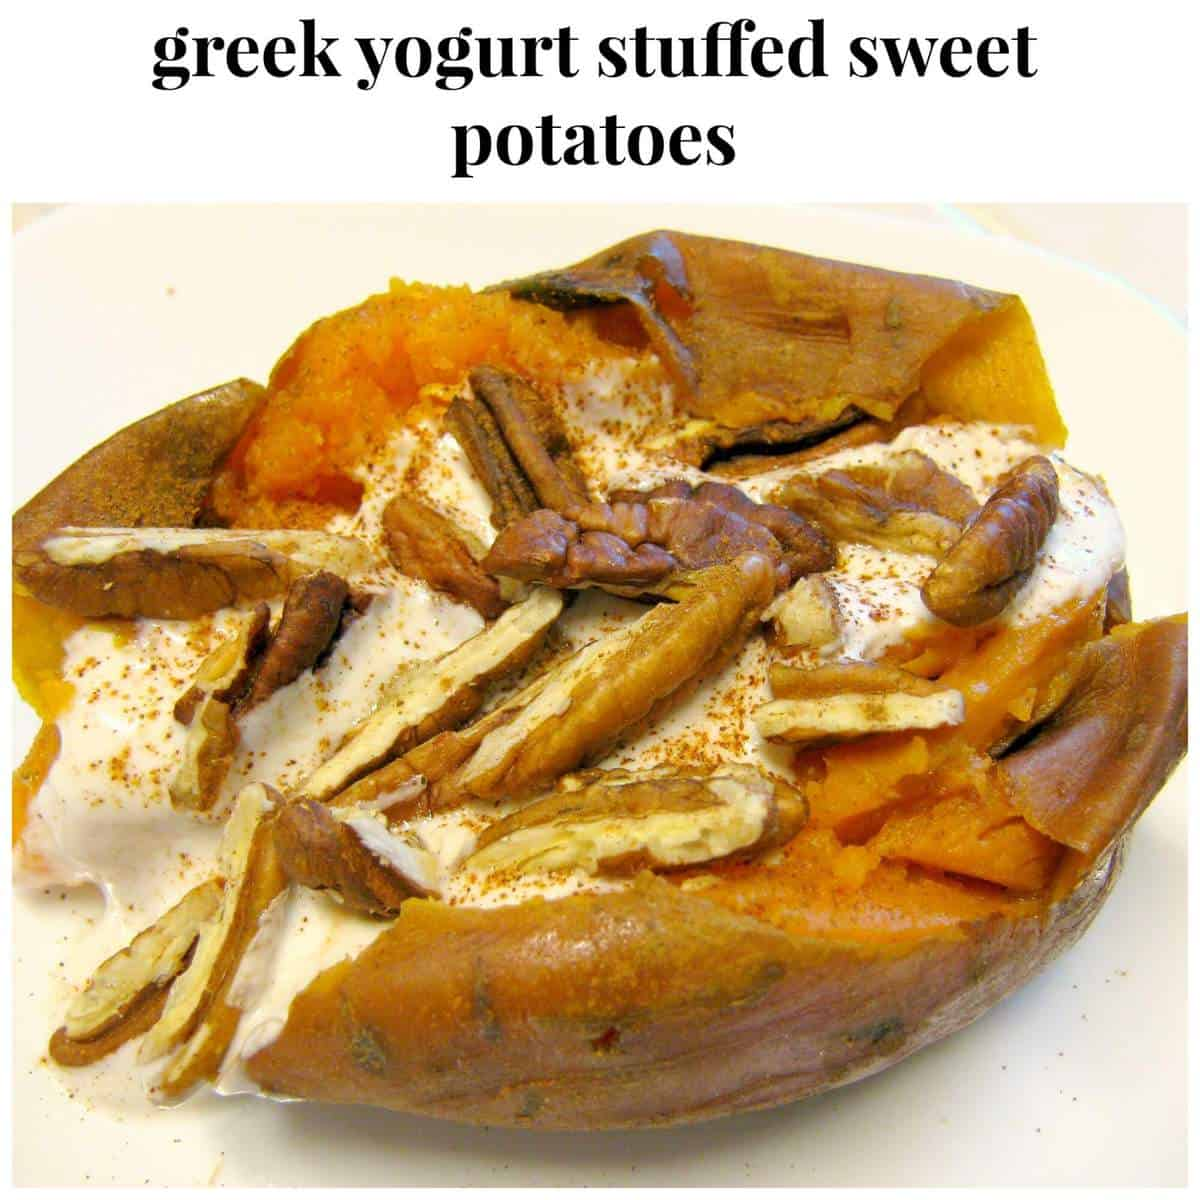 Ever wonder what to put on a sweet potato? Here's your answer! Try a soft and creamy sweet potato topped with lots of spices and yogurt  You will love how the spices accent the sweet potato and kick it up a notch- a family favorite. #sweetpotato